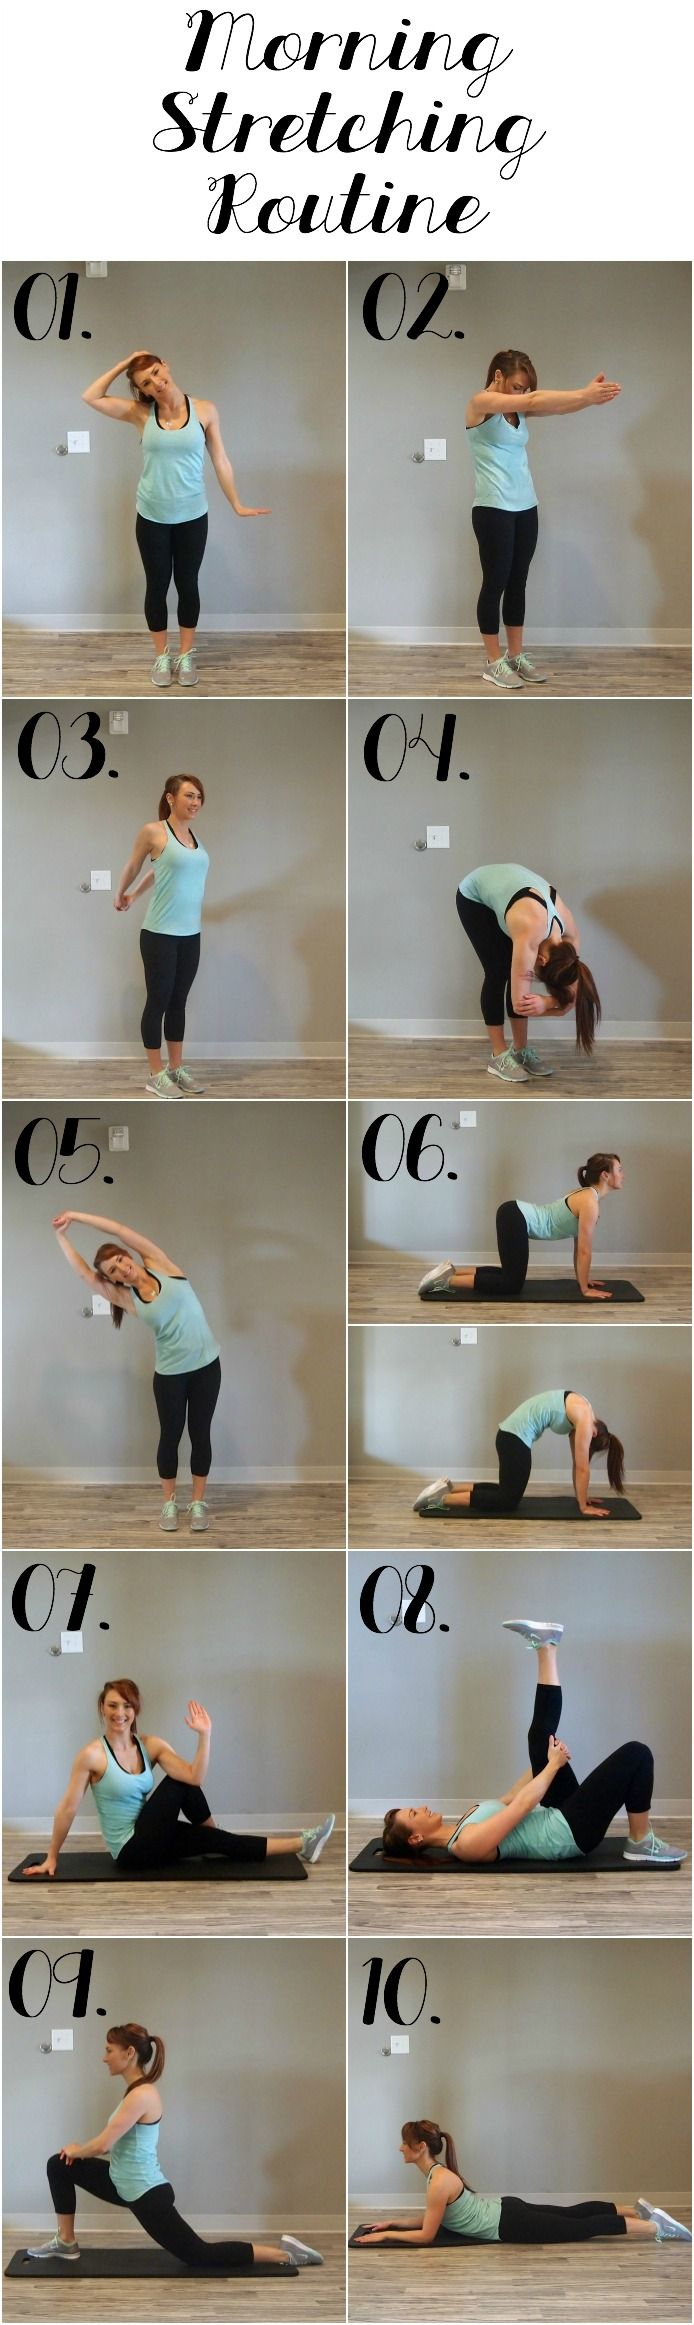 Maybe not all the stretches-but some Spoonies may be able to do them. :) Morning Stretching Routine